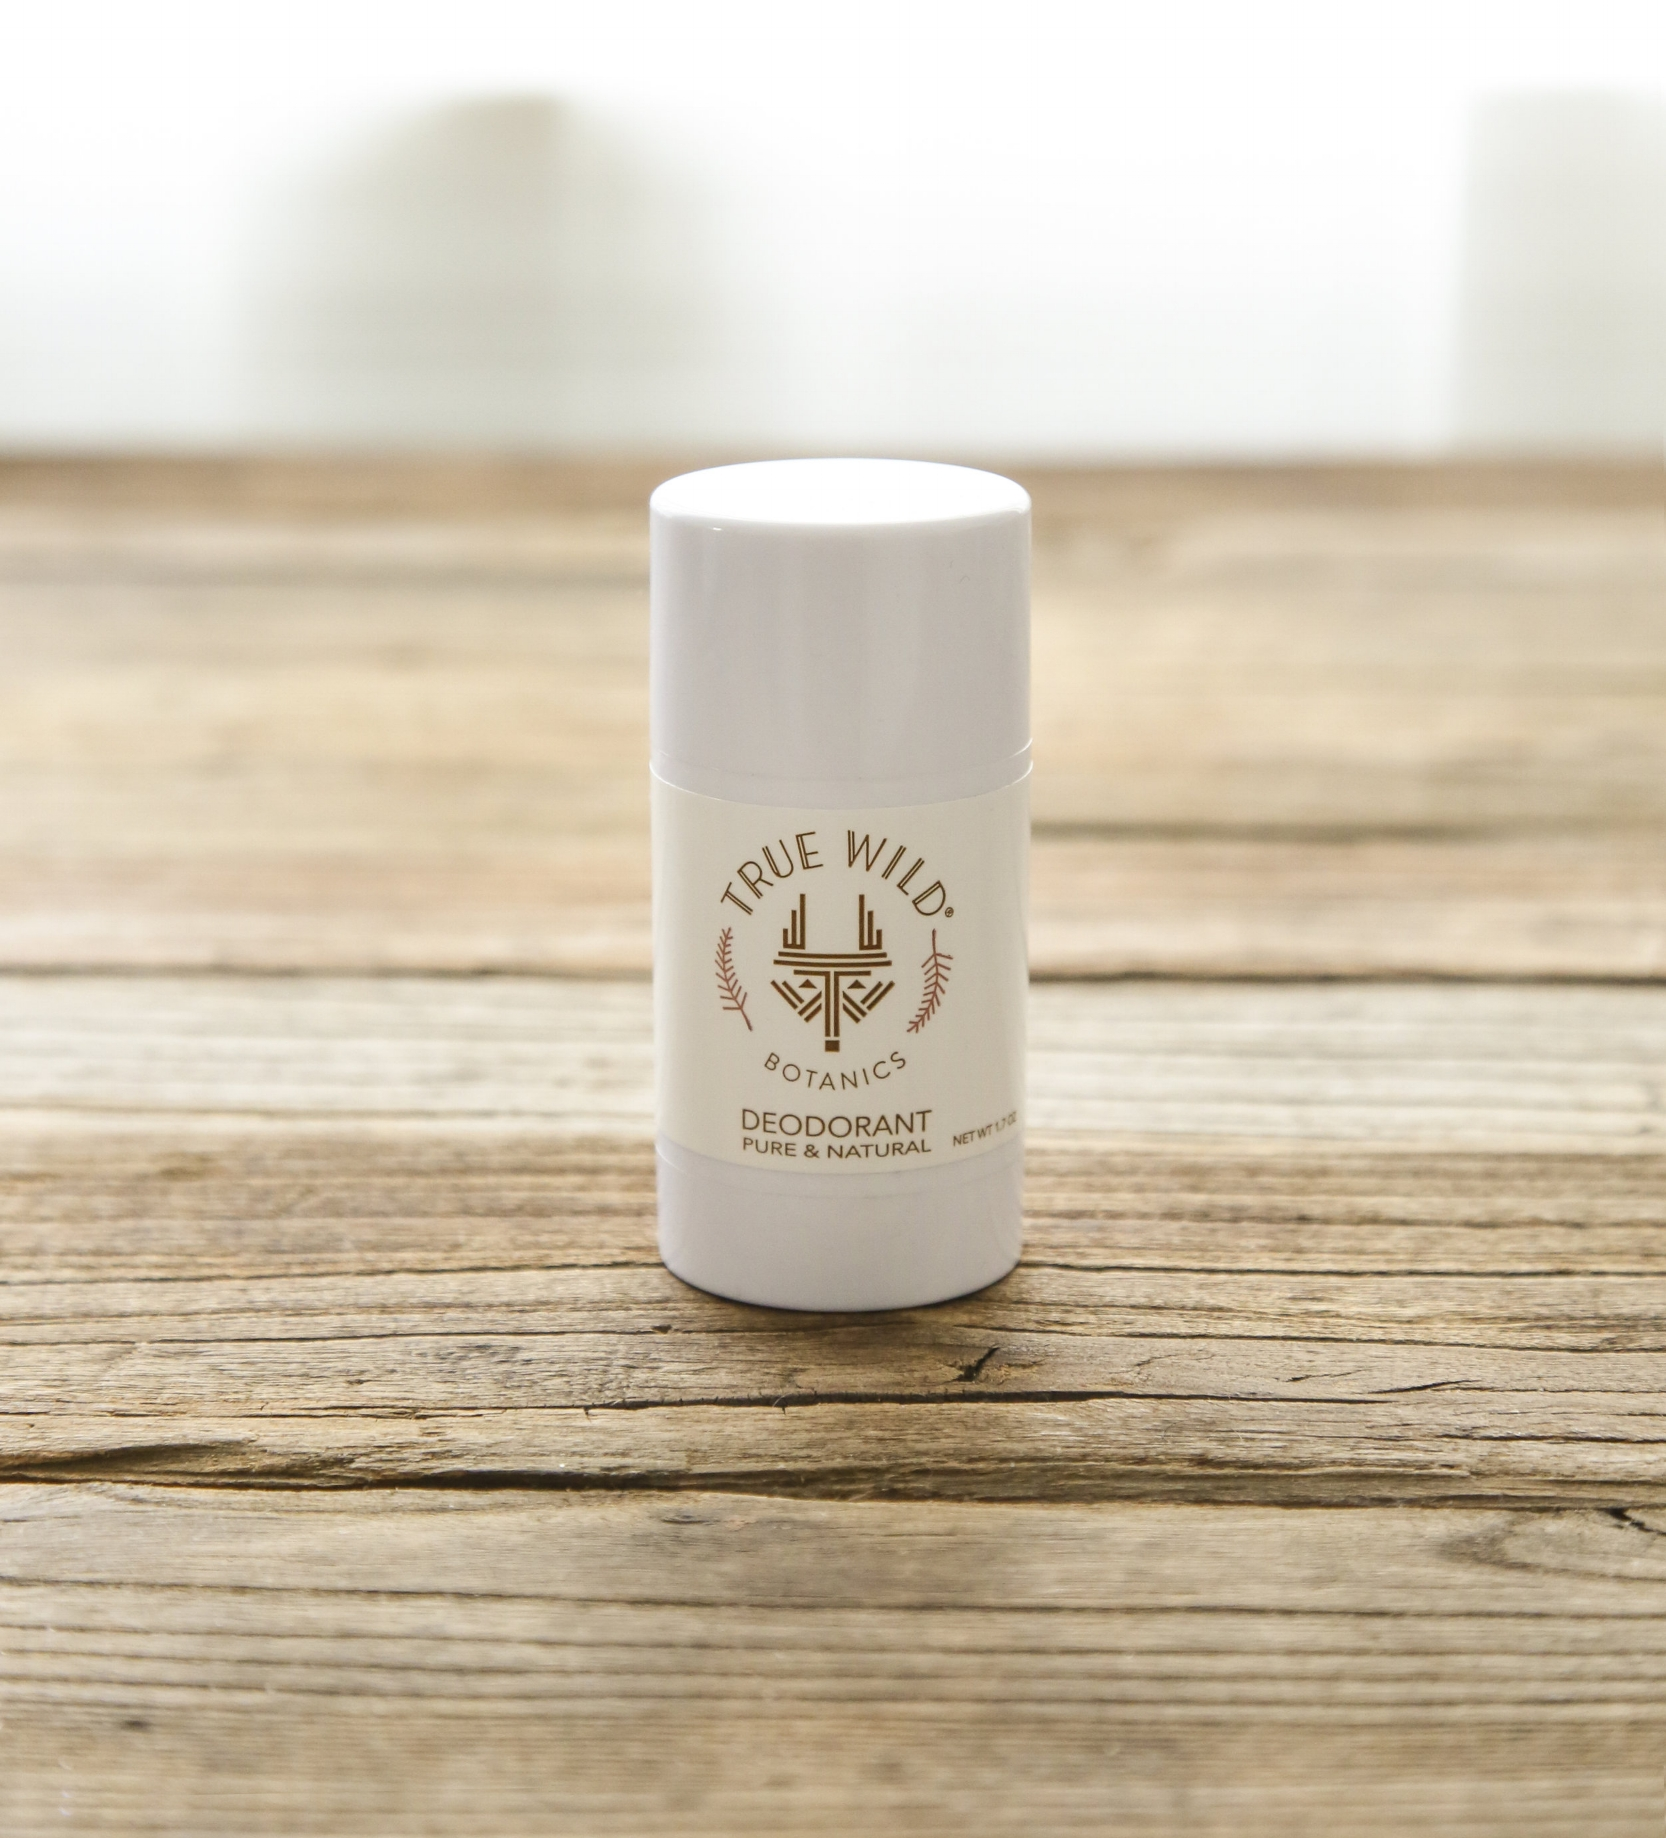 True Wild Botanics Pure & Natural Deodorant is powered with the help of baking soda, arrowroot powder and shea butter to restore pH balance, absorb moisture and eliminate bacteria. Tea Tree essential oil's antifungal, antibacterial and antiviral properties keep odor-causing bacteria under wraps. Lavender and bergamot essential oils add detoxifying and disinfecting qualities with a clean scent to make your nose happy.